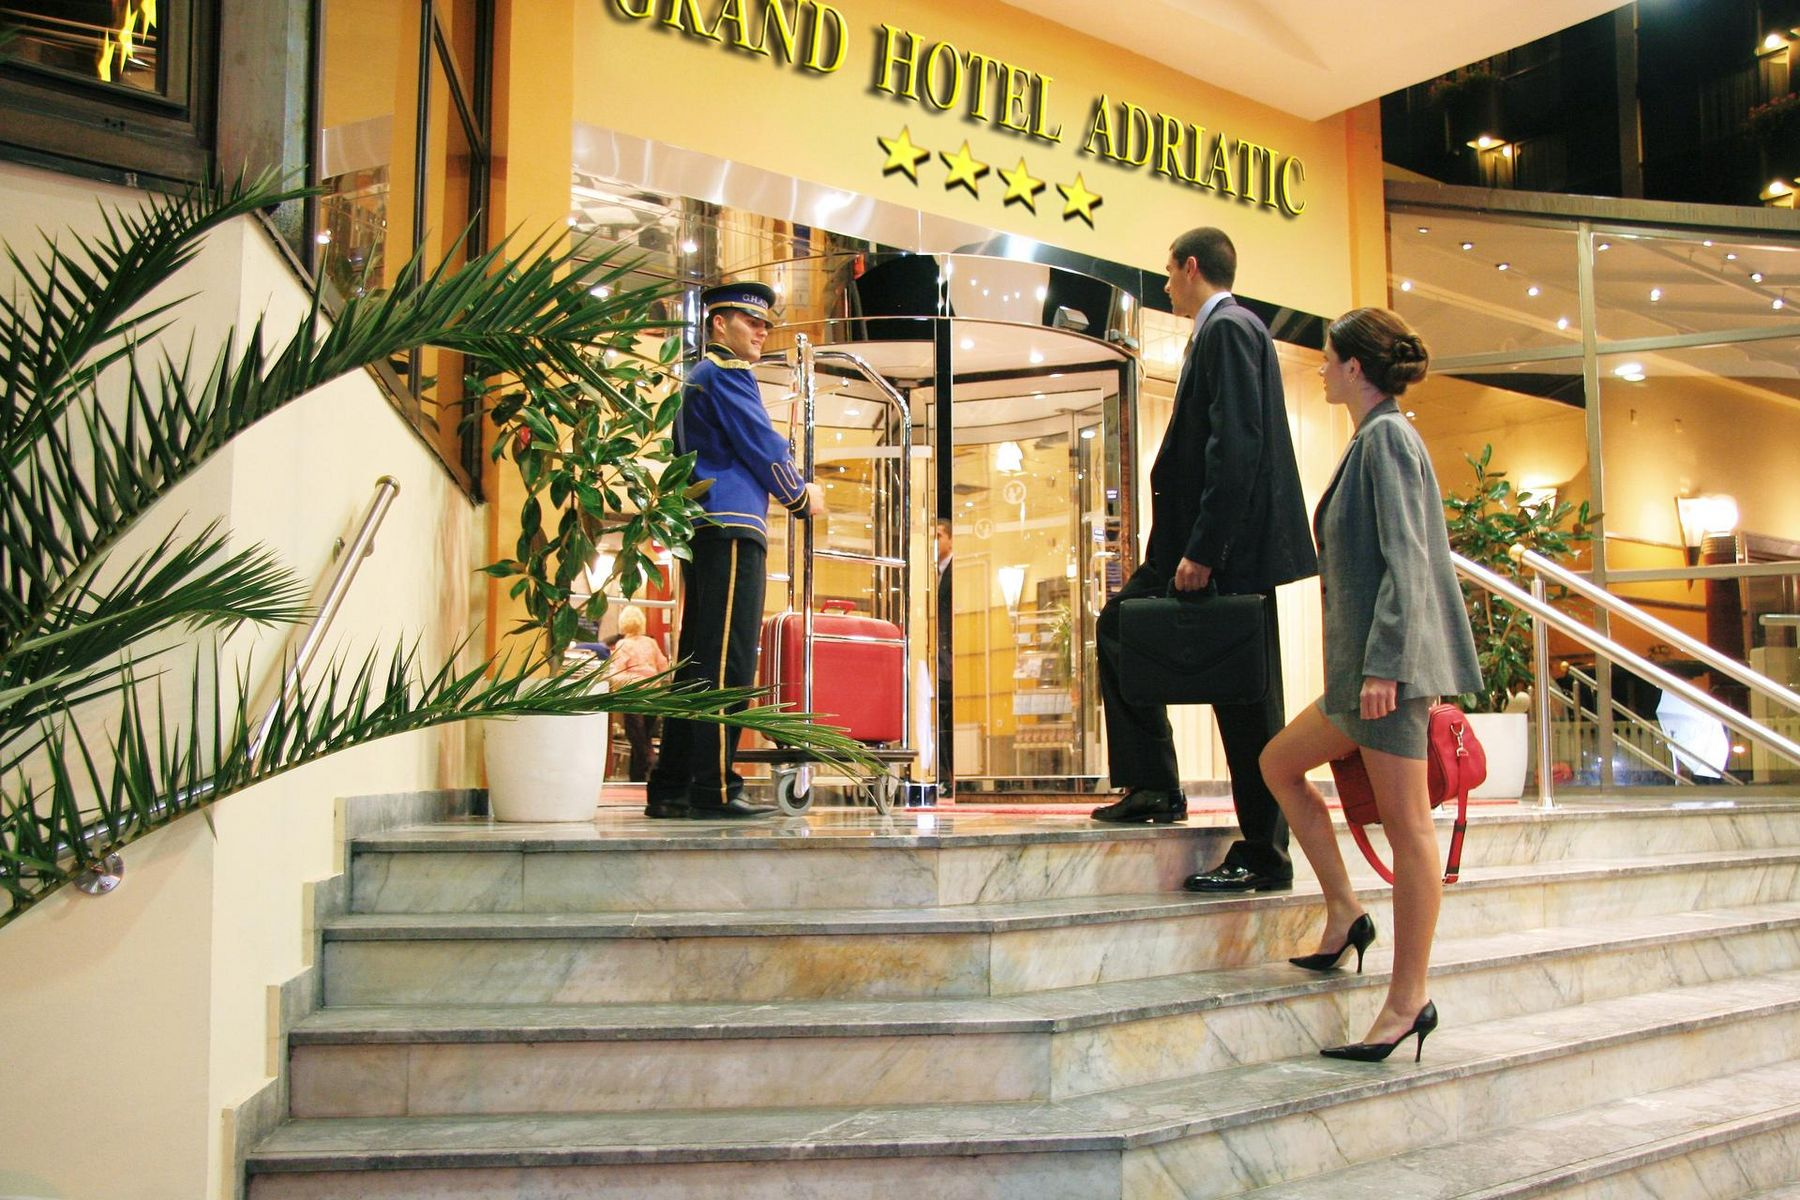 Grand Hotel Adriatic in Opatija